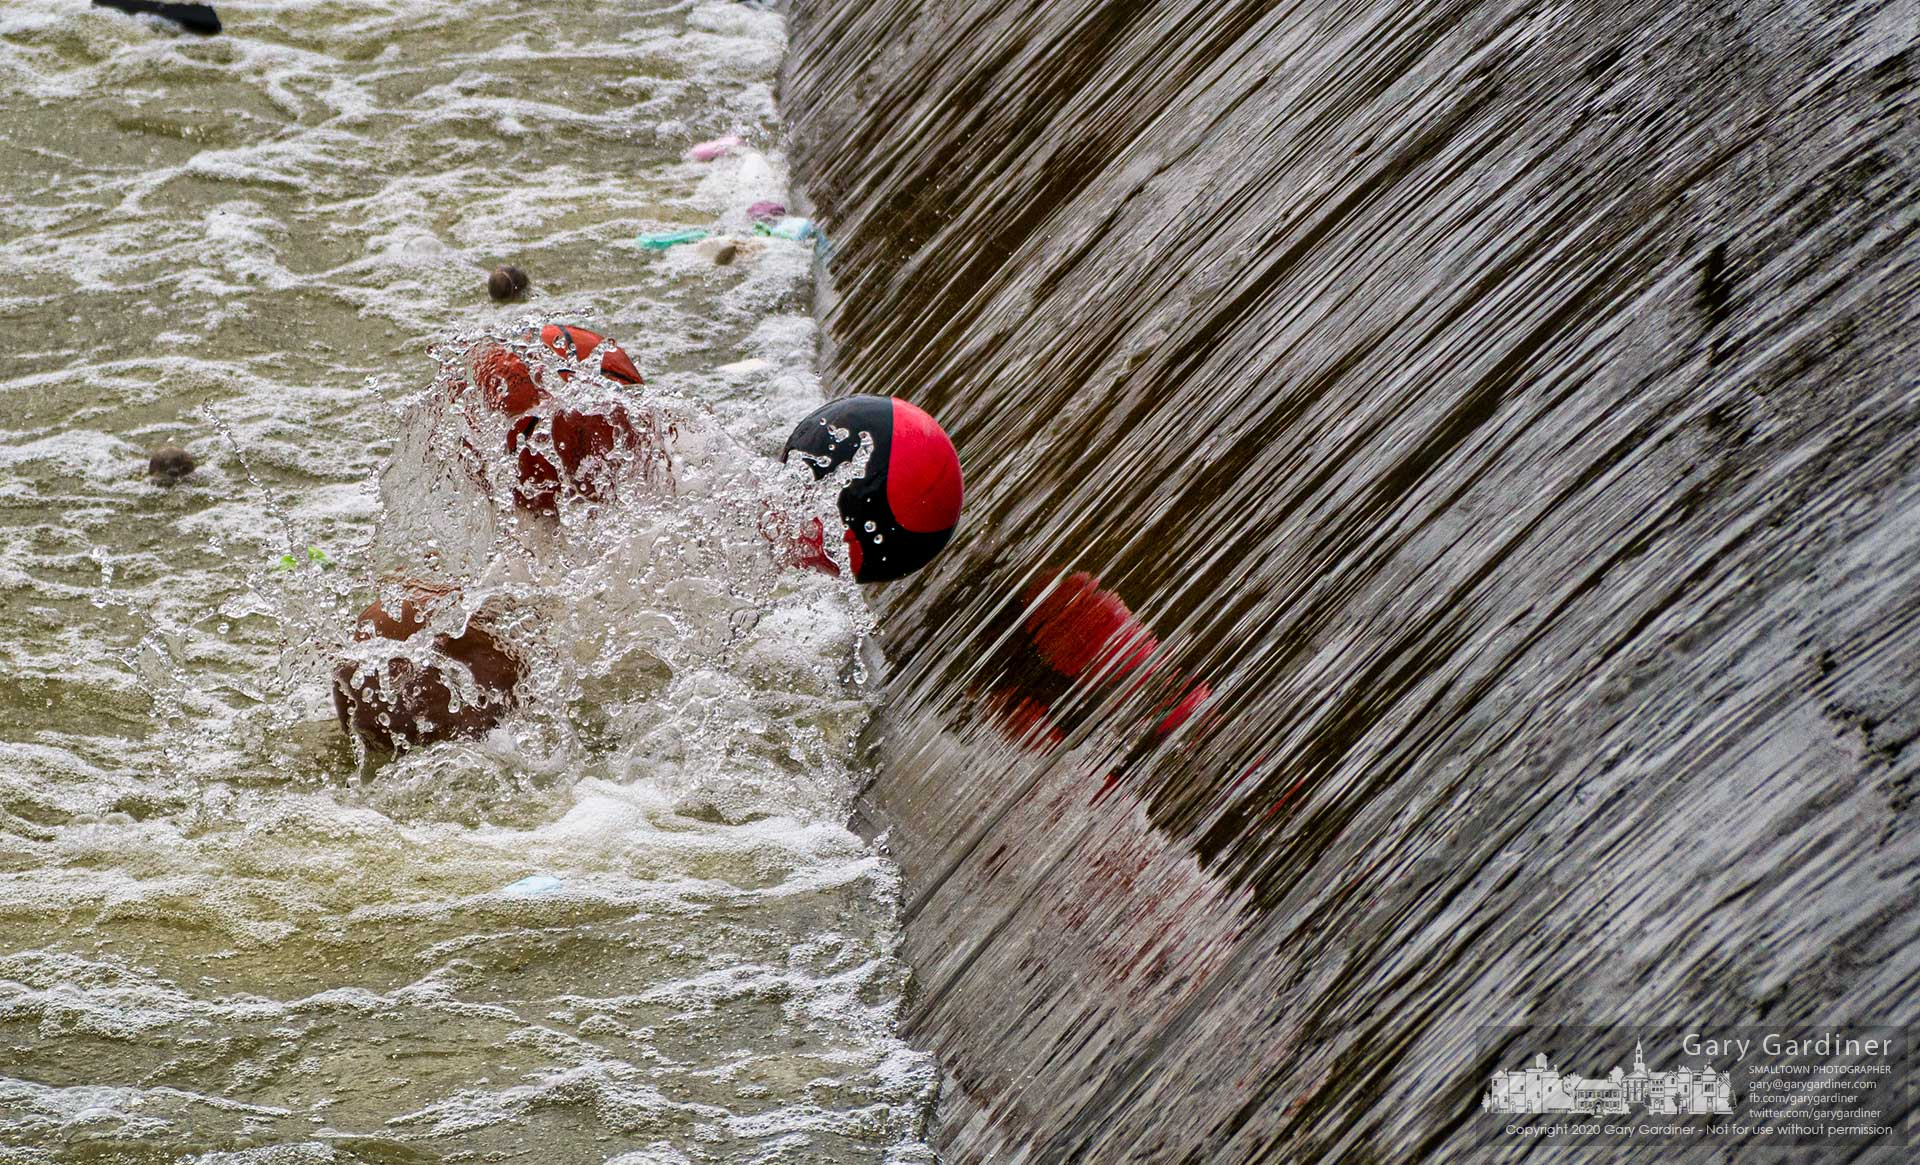 A trio of basketballs and a collection of small and tennis balls fight their way through the unforgiving waters at the base of the low head dam at Alum Creek in Westerville. My Final Photo for March 27, 2020.